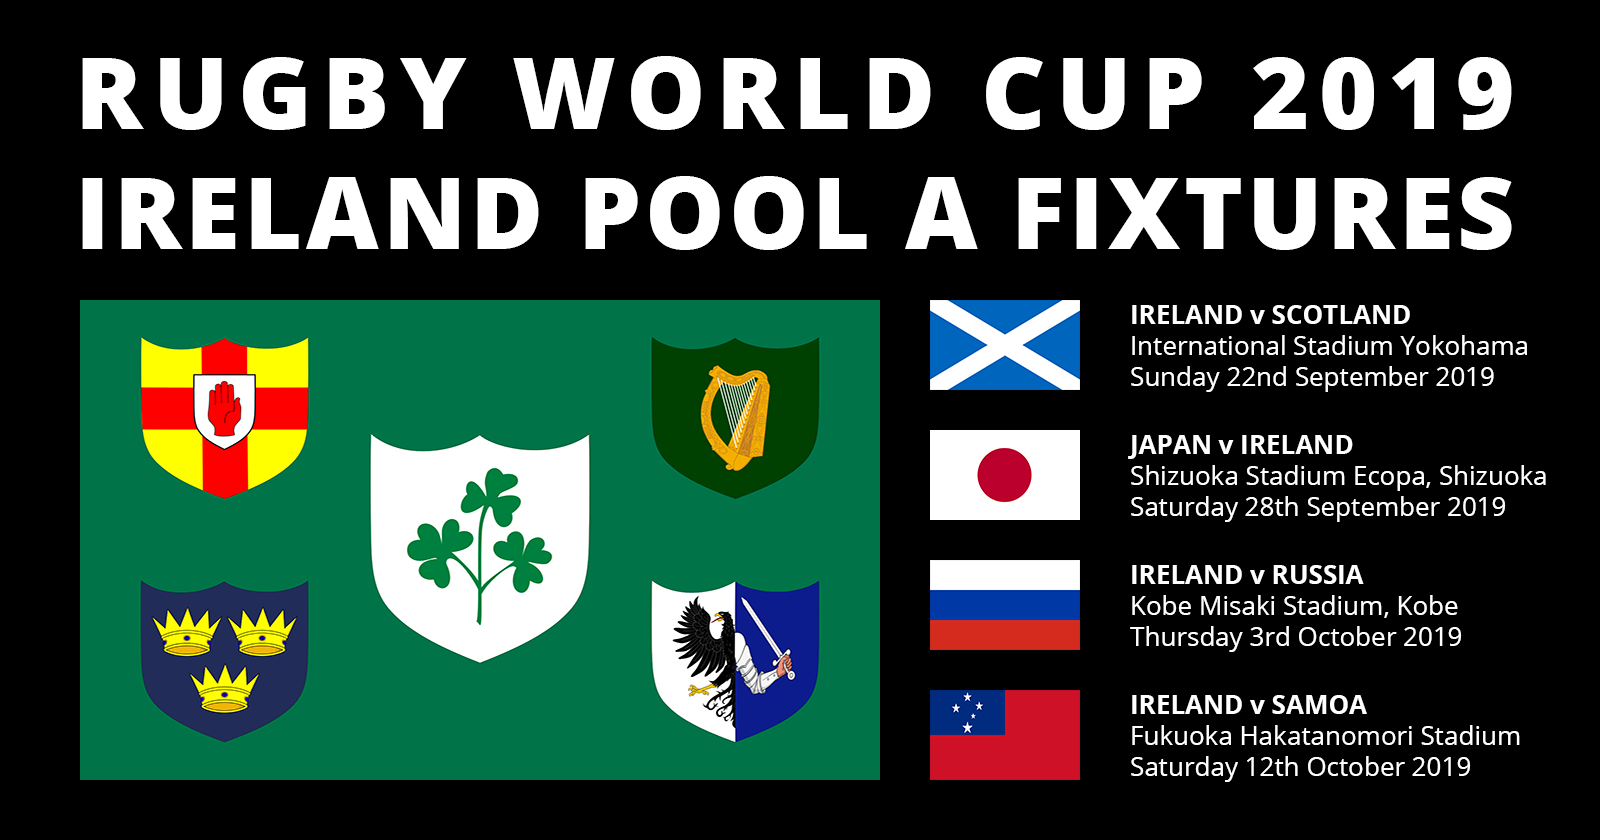 Ireland Rugby World Cup 2019 Fixtures